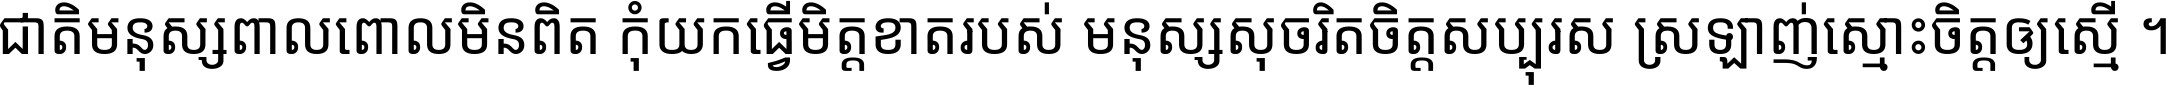 Noto Sans Khmer SemiCondensed